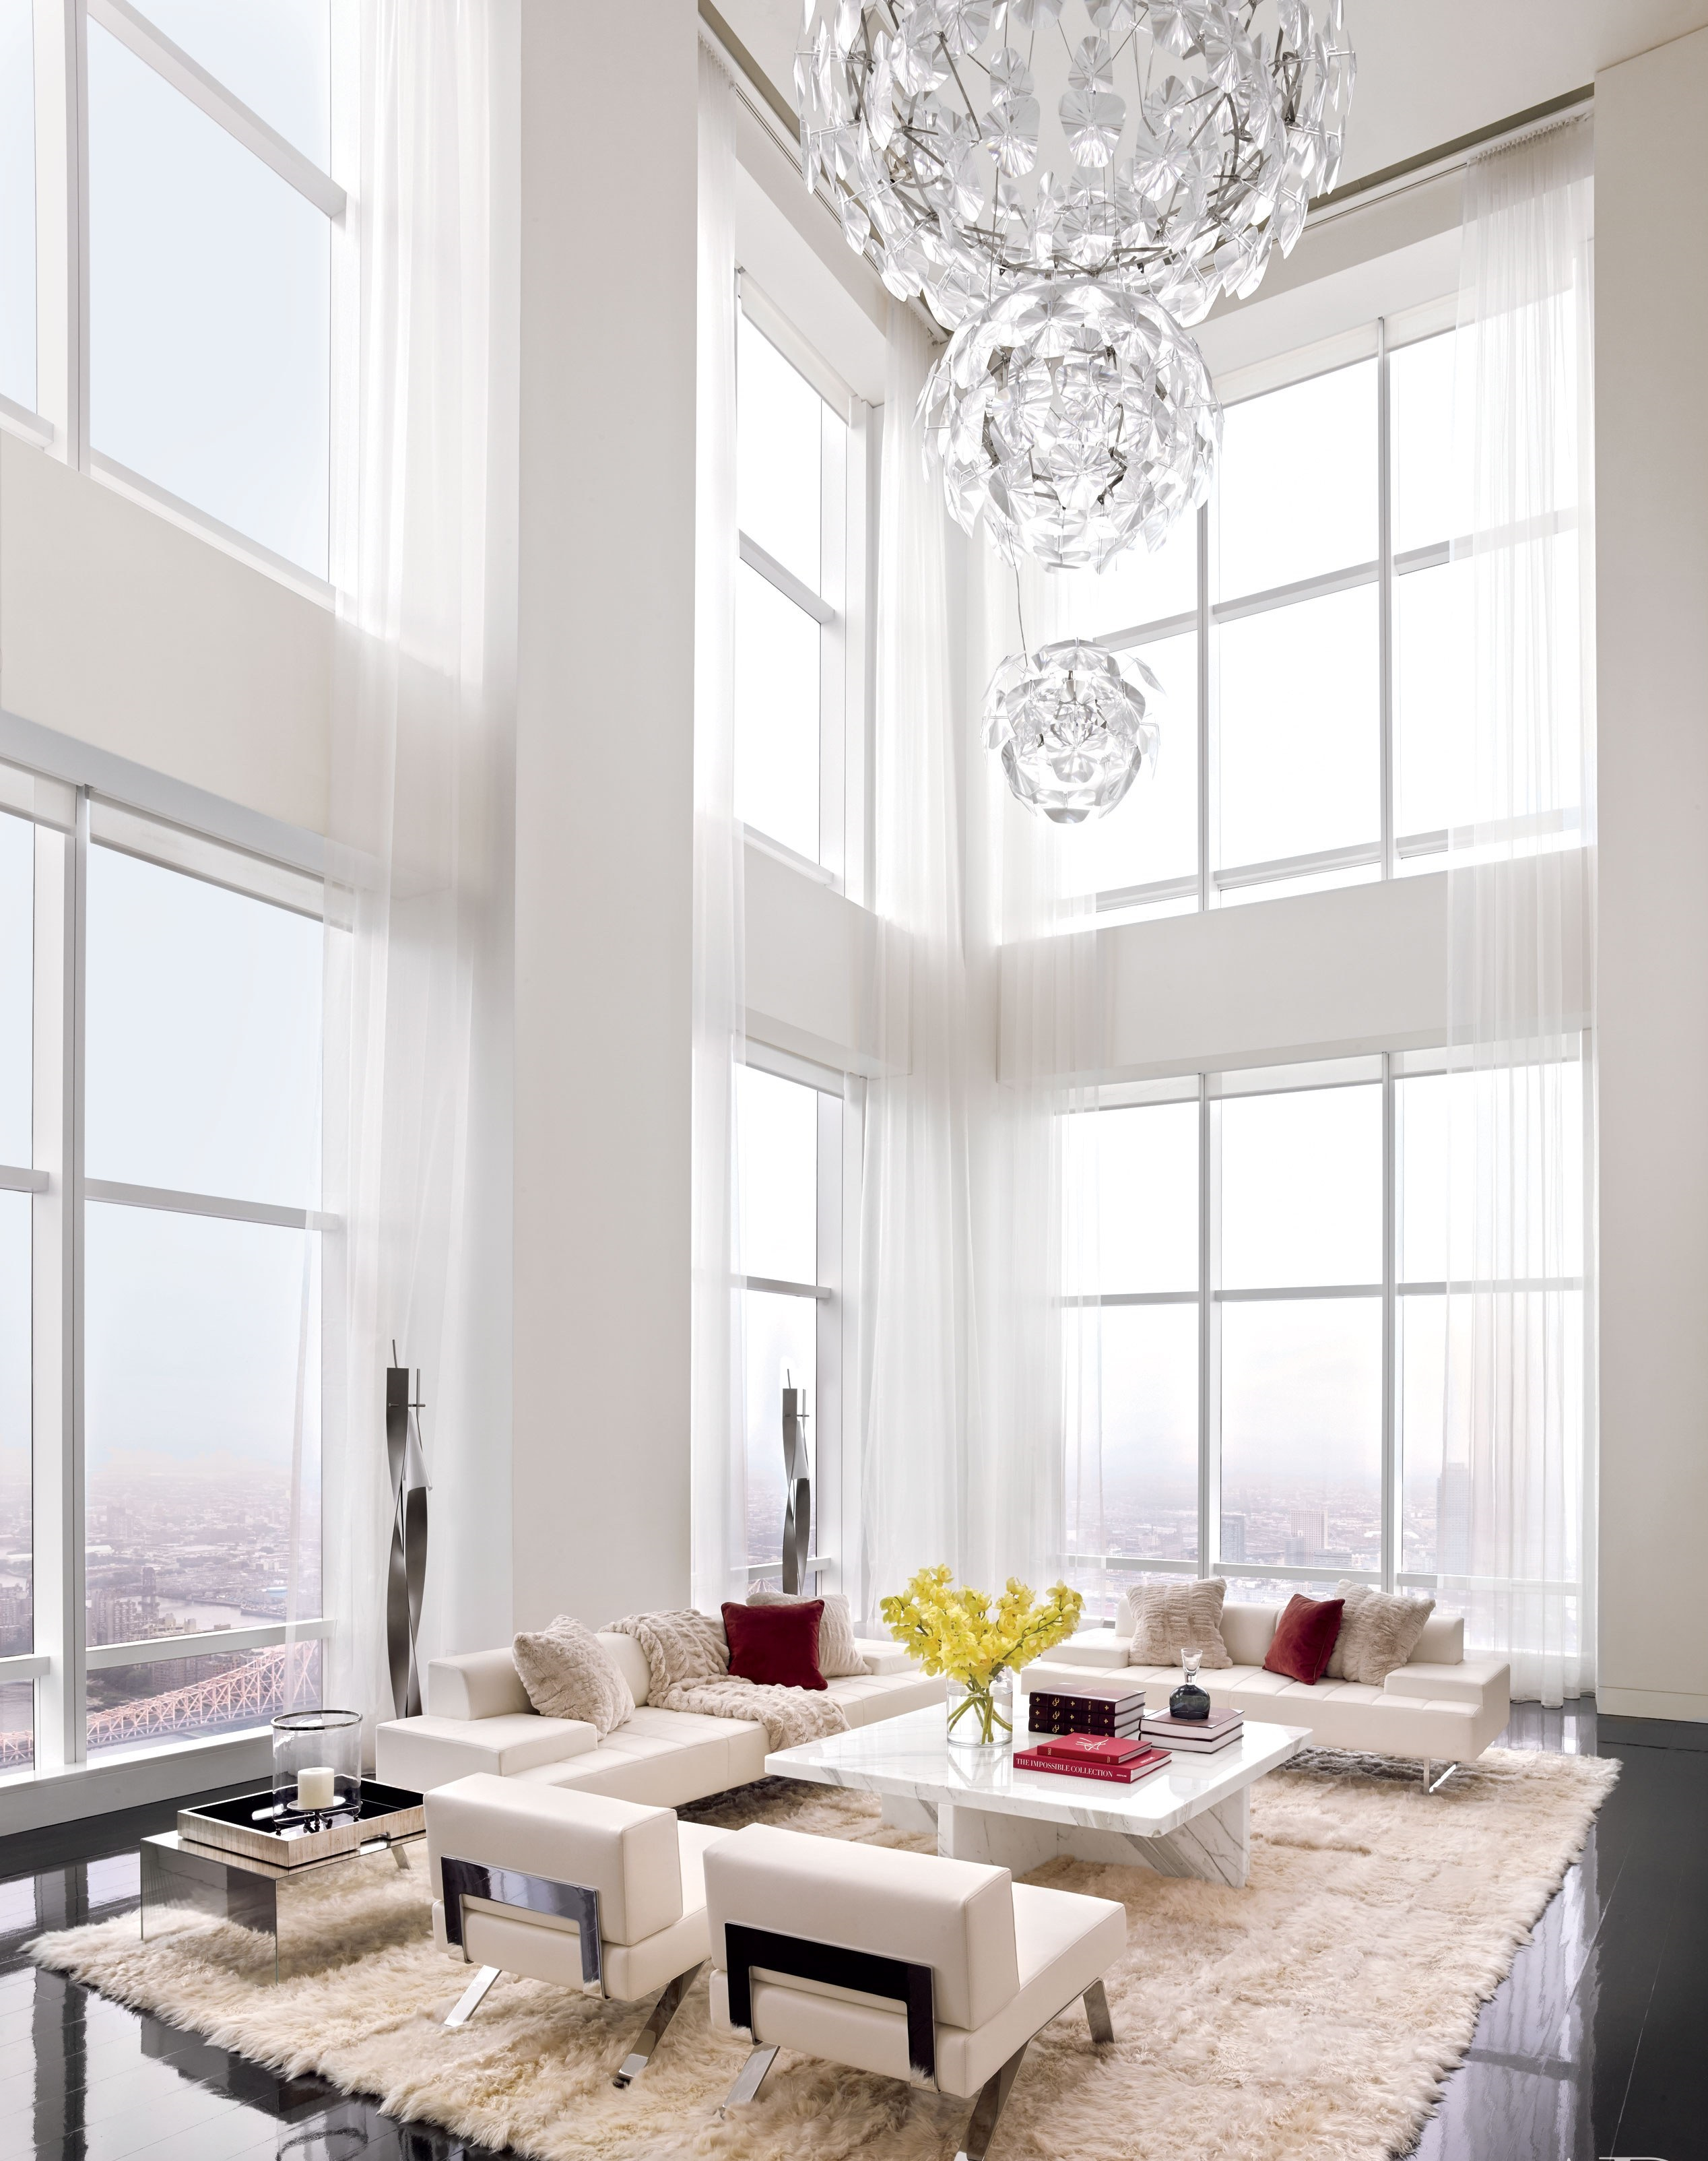 Apartment Living Room Decor Pinterest: Top 8 Manhattan Dream Living Rooms To Inspire You